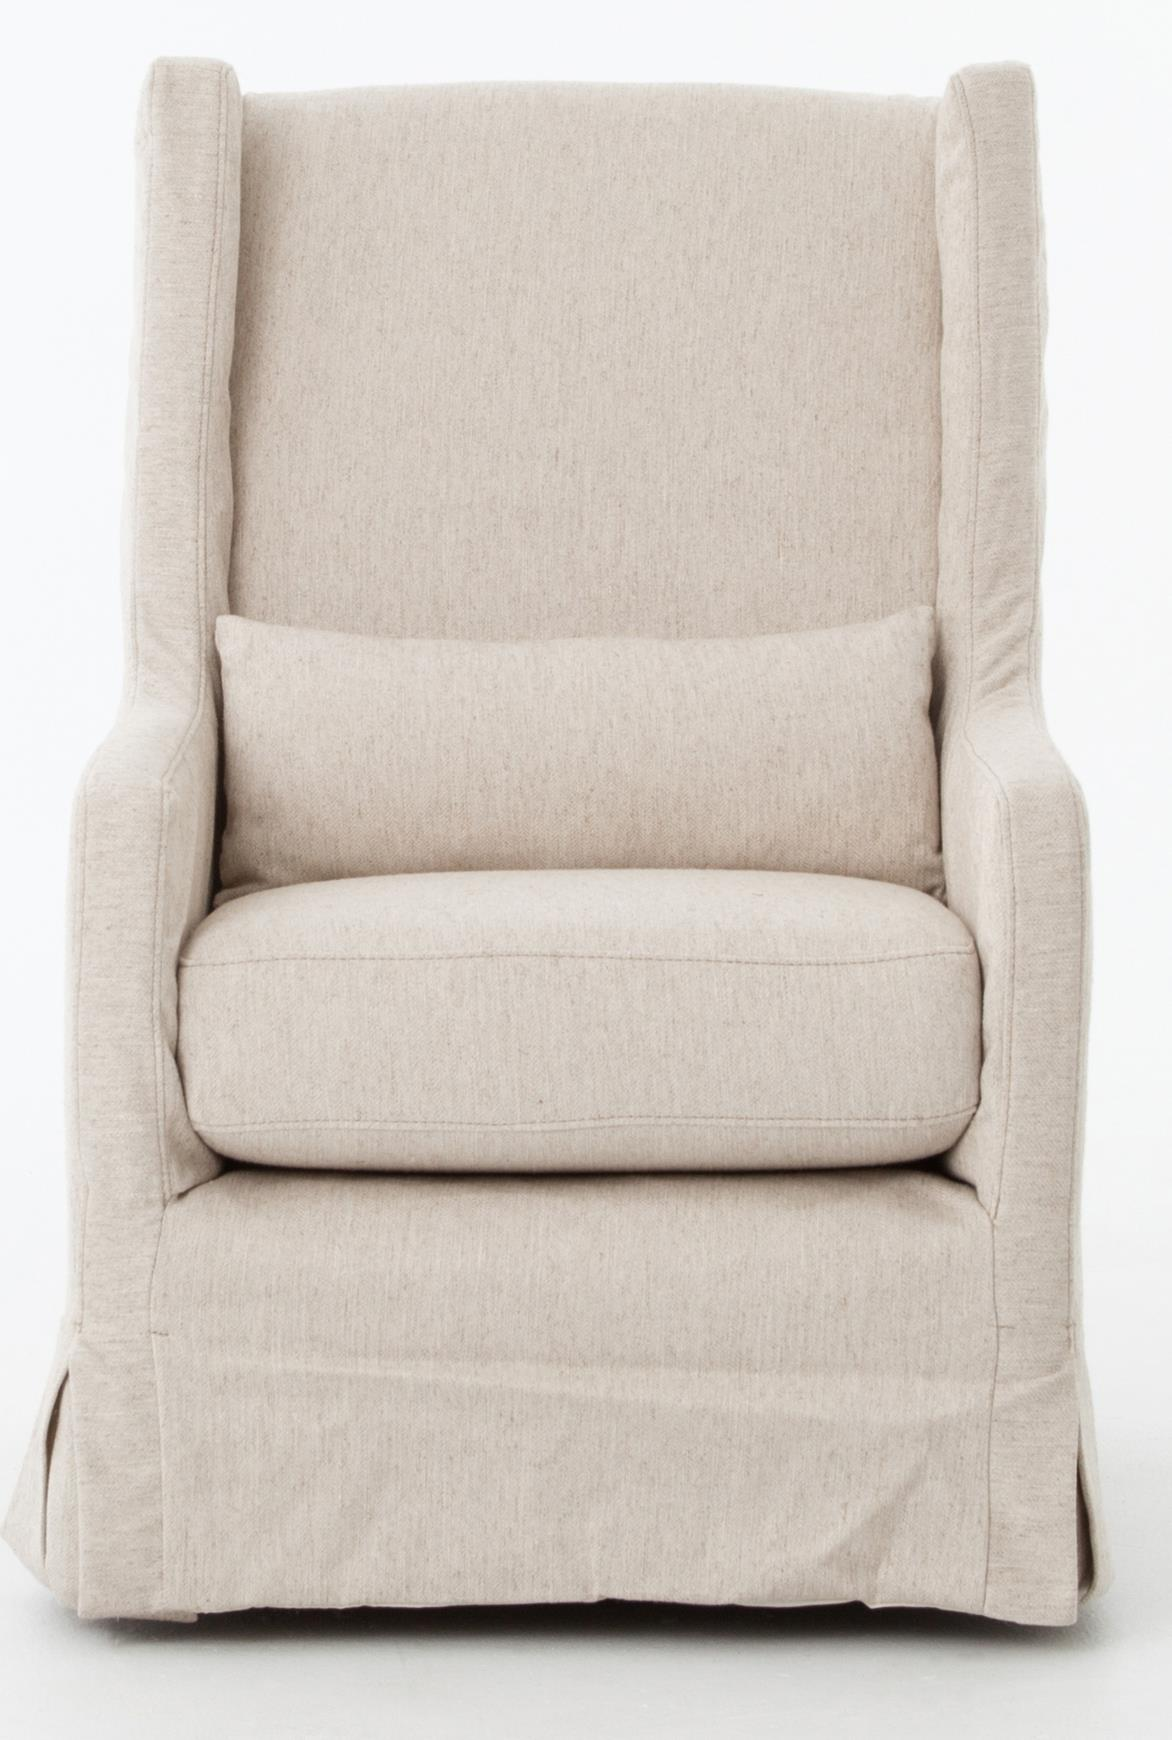 Four Hands Kensington Swivel Wing Chair - Item Number: CKEN-C2-362